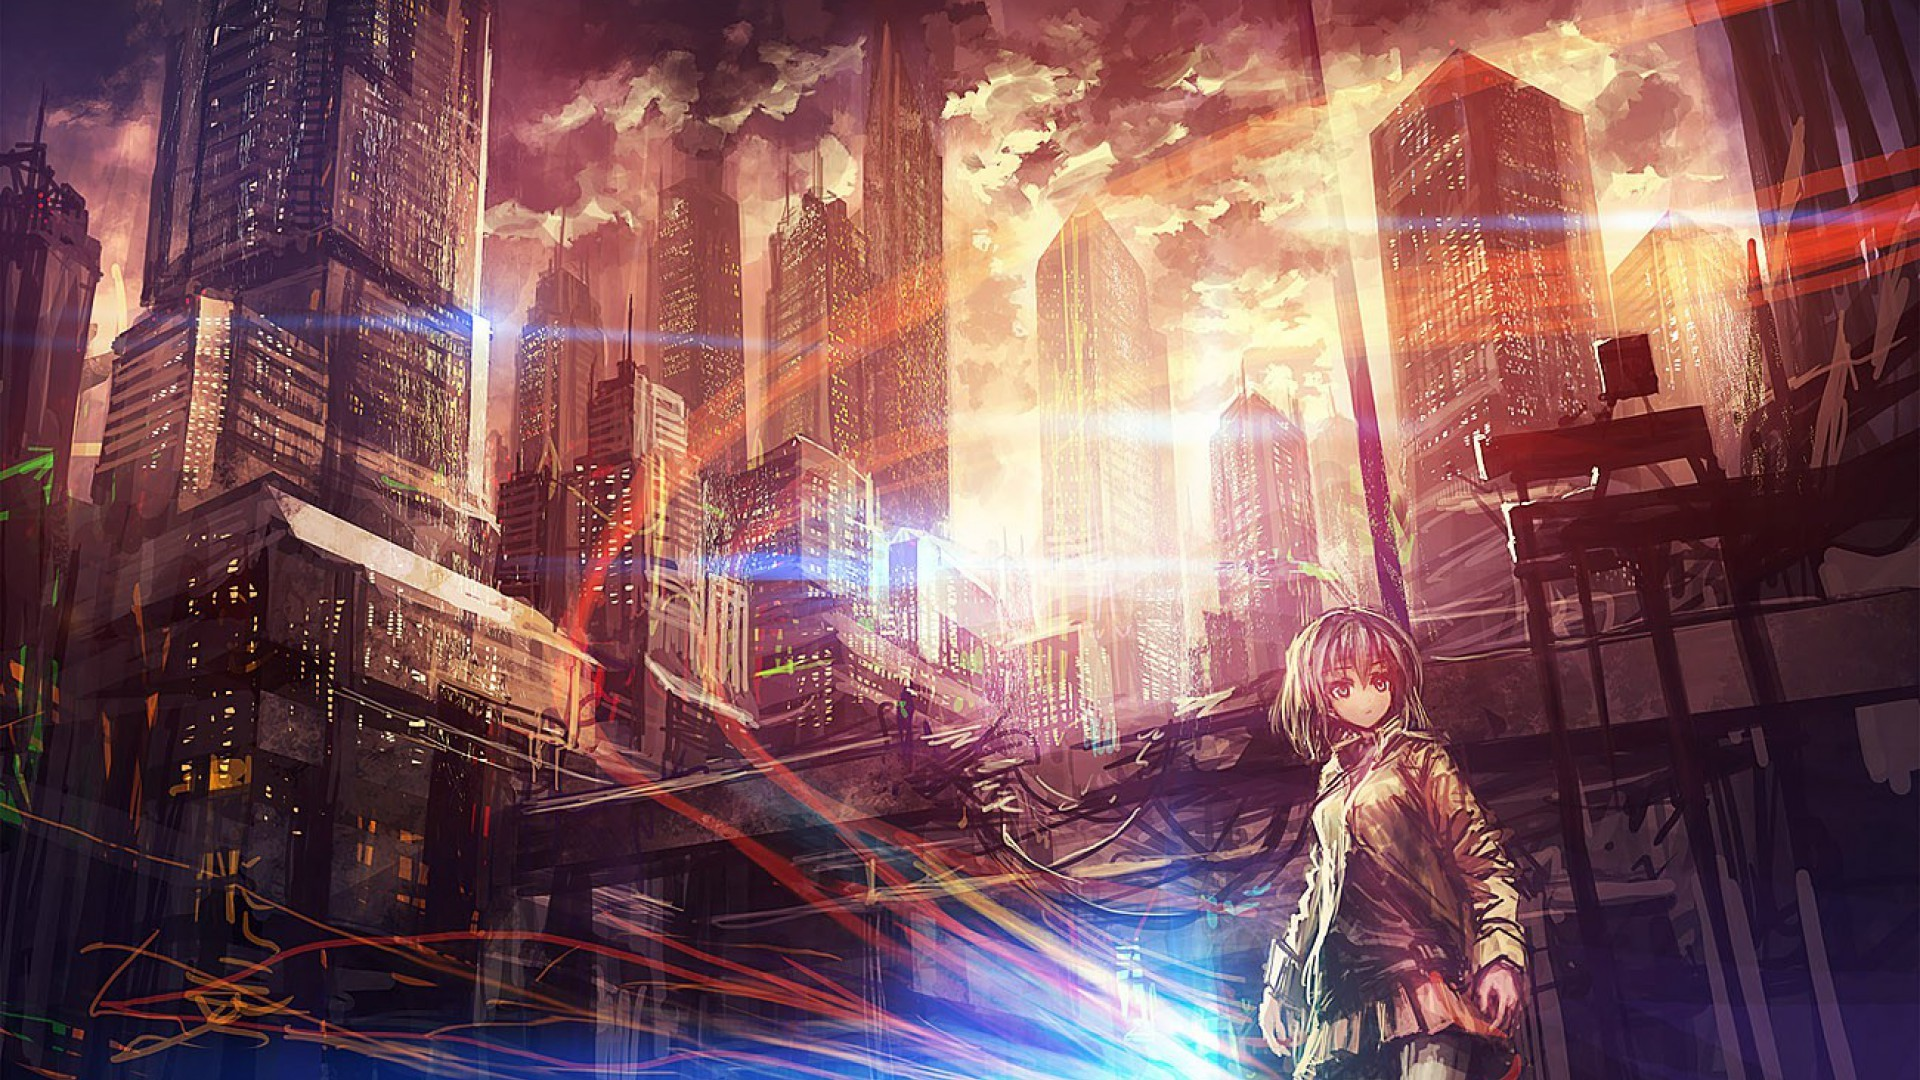 1920x1080 Anime City Scenery Wallpapers Background with High Definition Wallpaper   px 594.82 KB